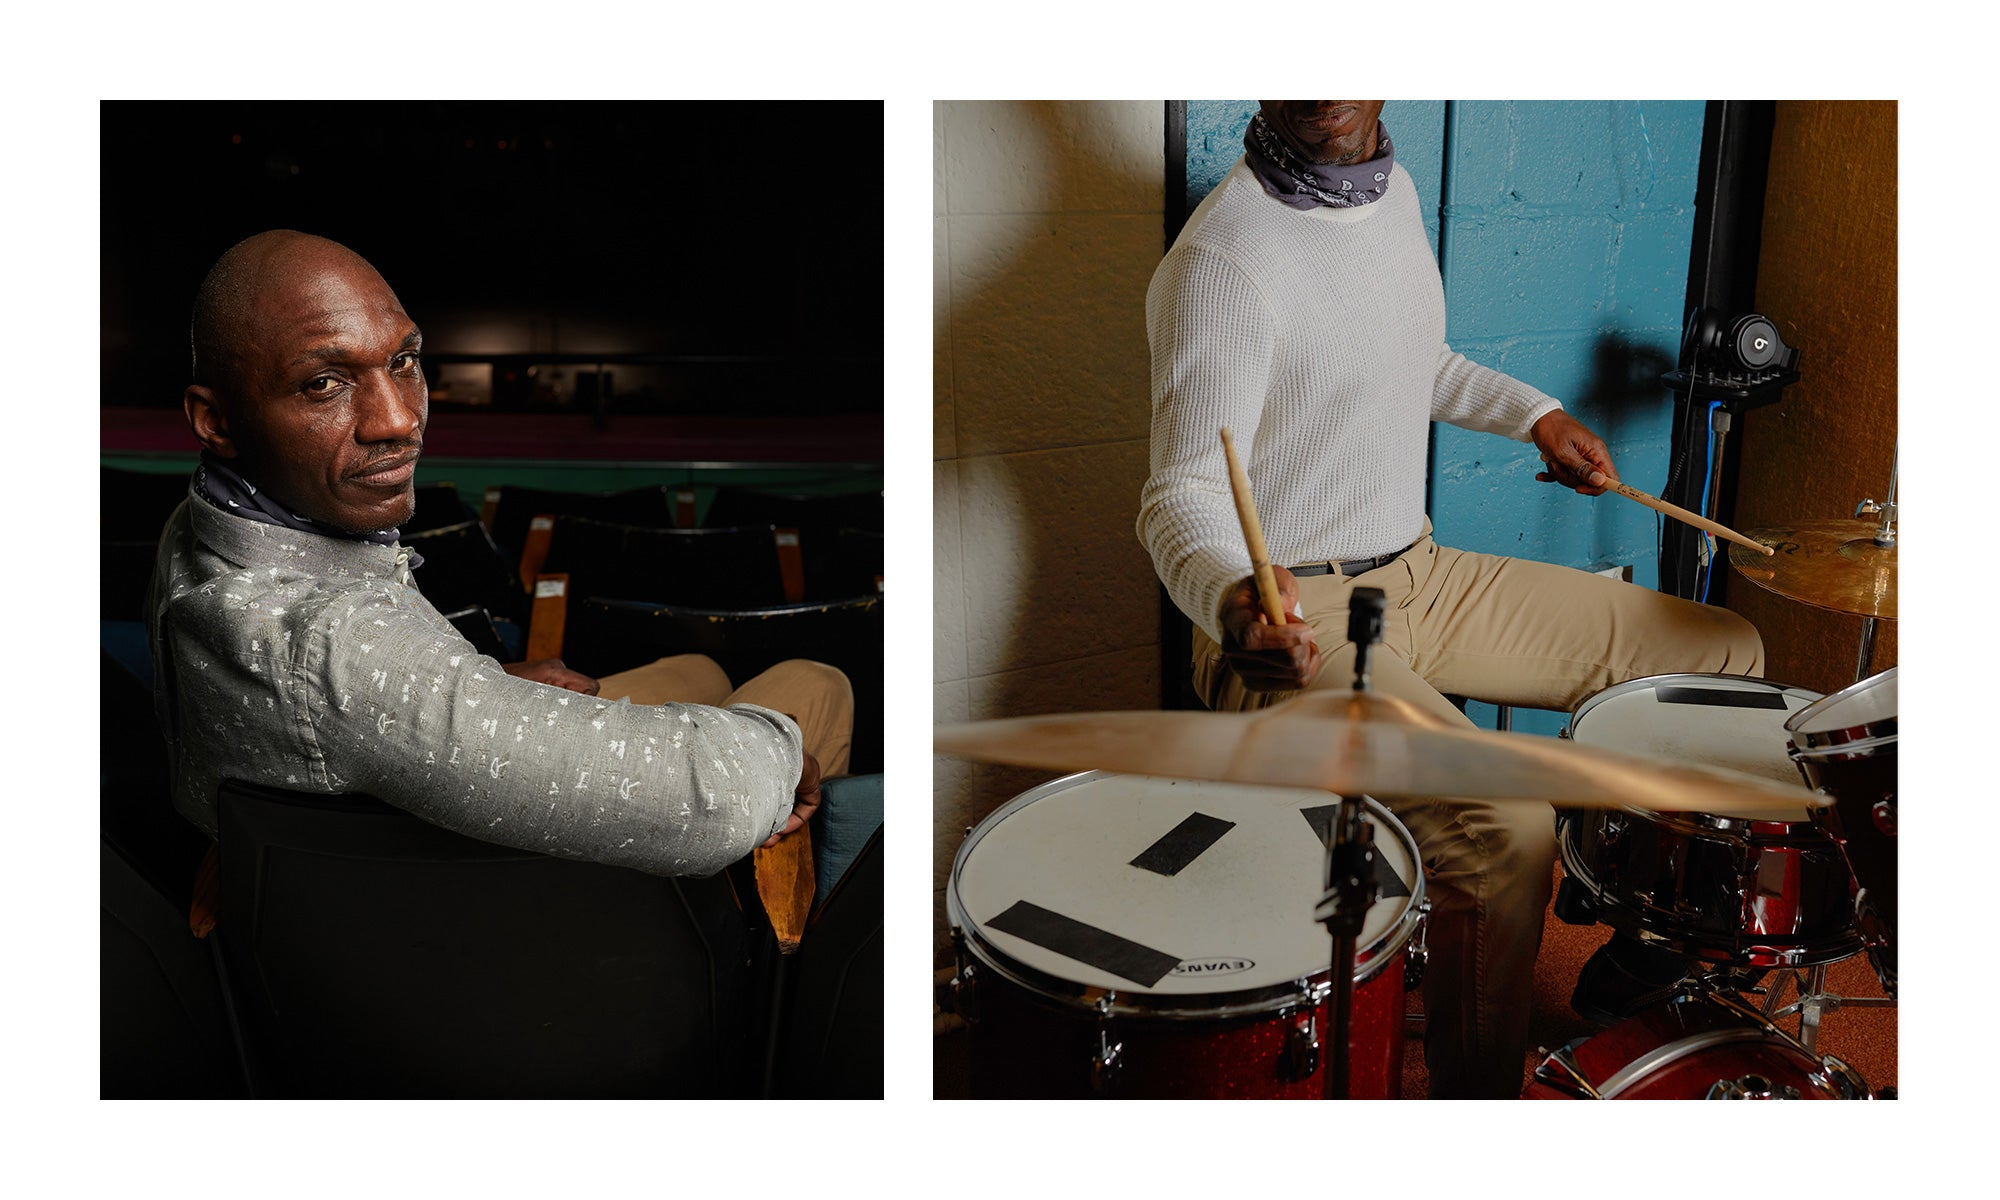 Left: portrait of Grammy-nominated singer/songwriter Cedric Burnside wearing the SS21 John T while sitting in the empty audience of the famous Shoals Theatre; Right: Cedric Burnside playing drums while wearing the Mini Waffle Knit Crew and the Pima Cotton Chino pants